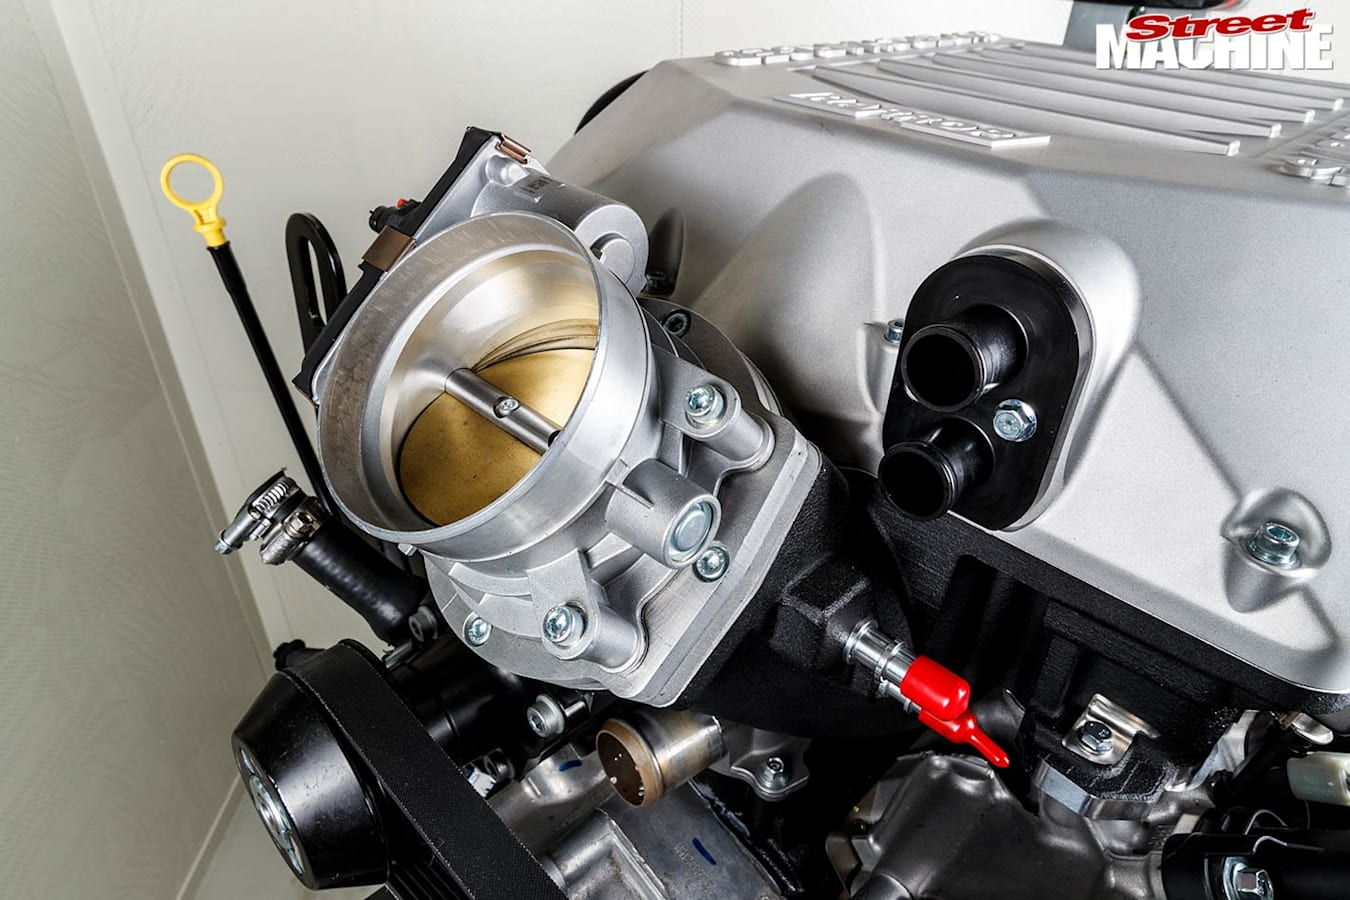 Street Machine Features Supercharged Godzilla 7 3 L V 8 Induction